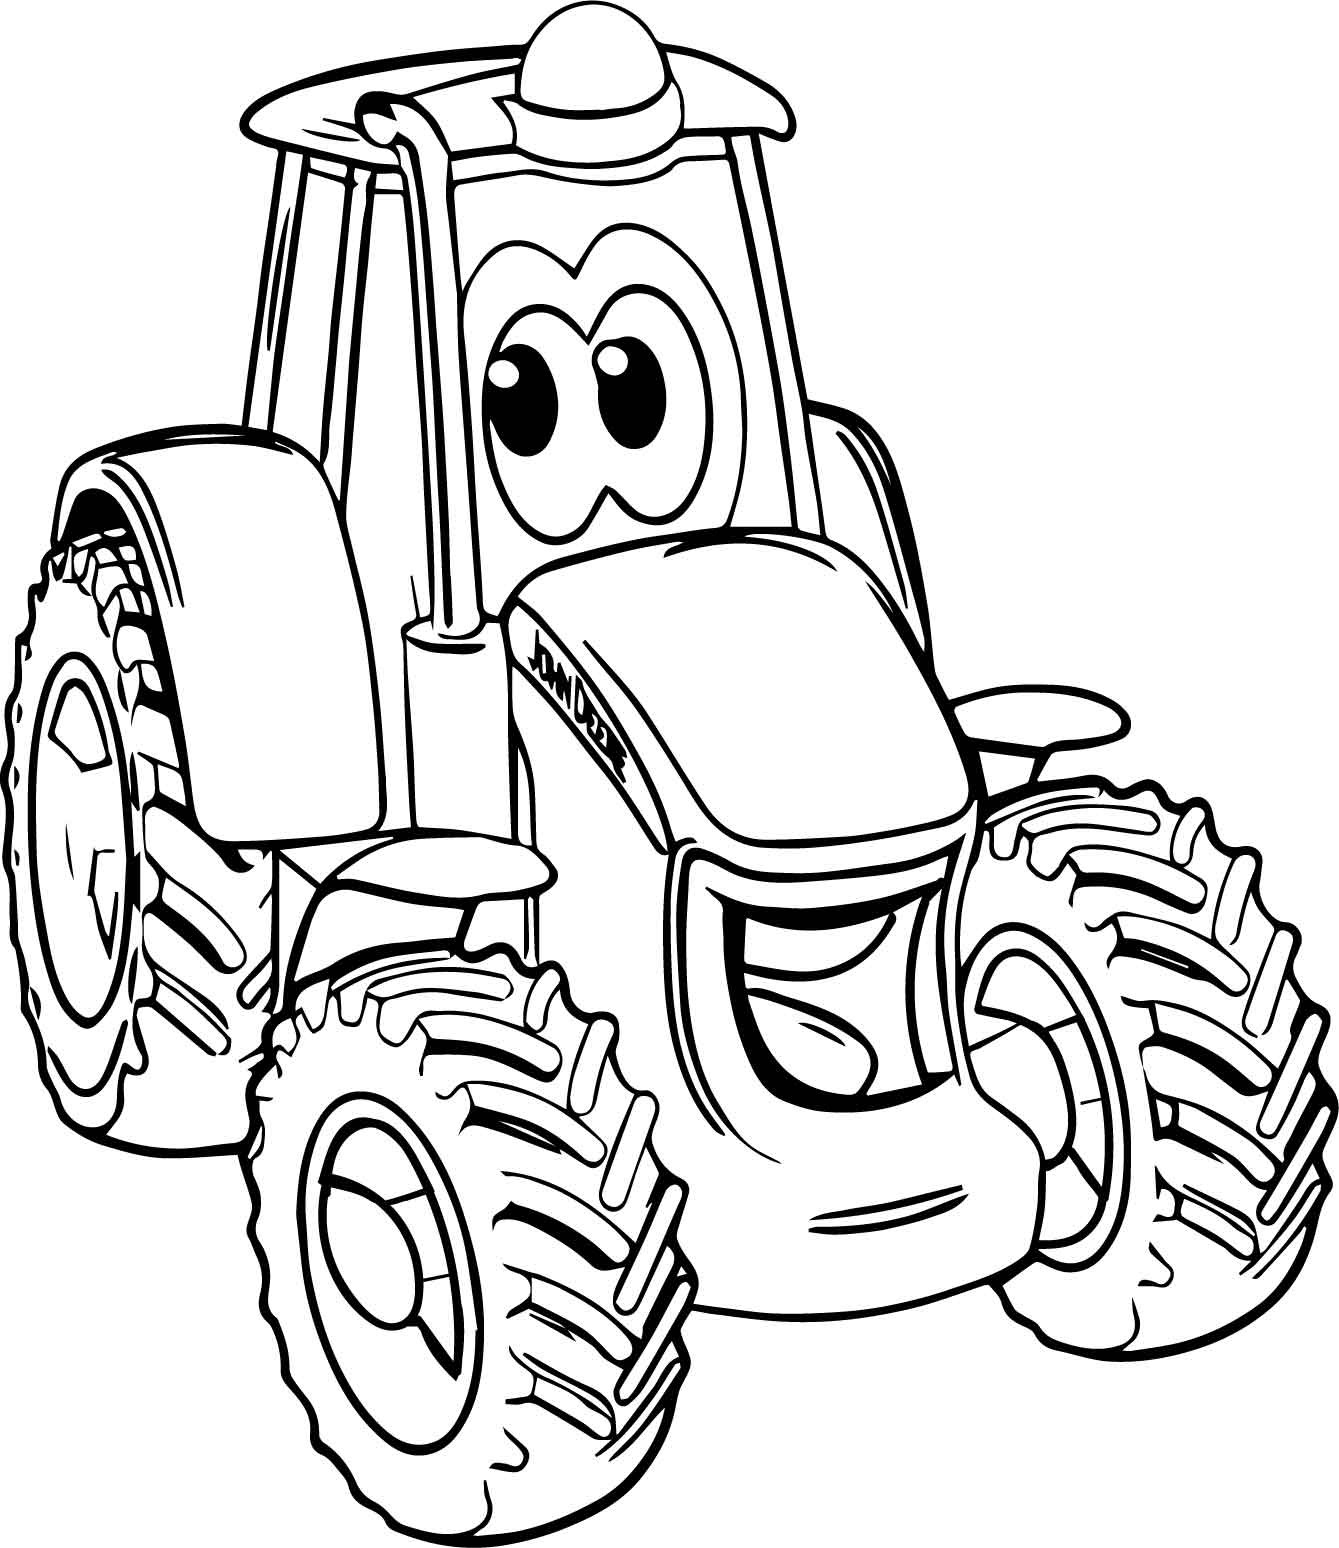 tractors coloring pages to print - photo#15